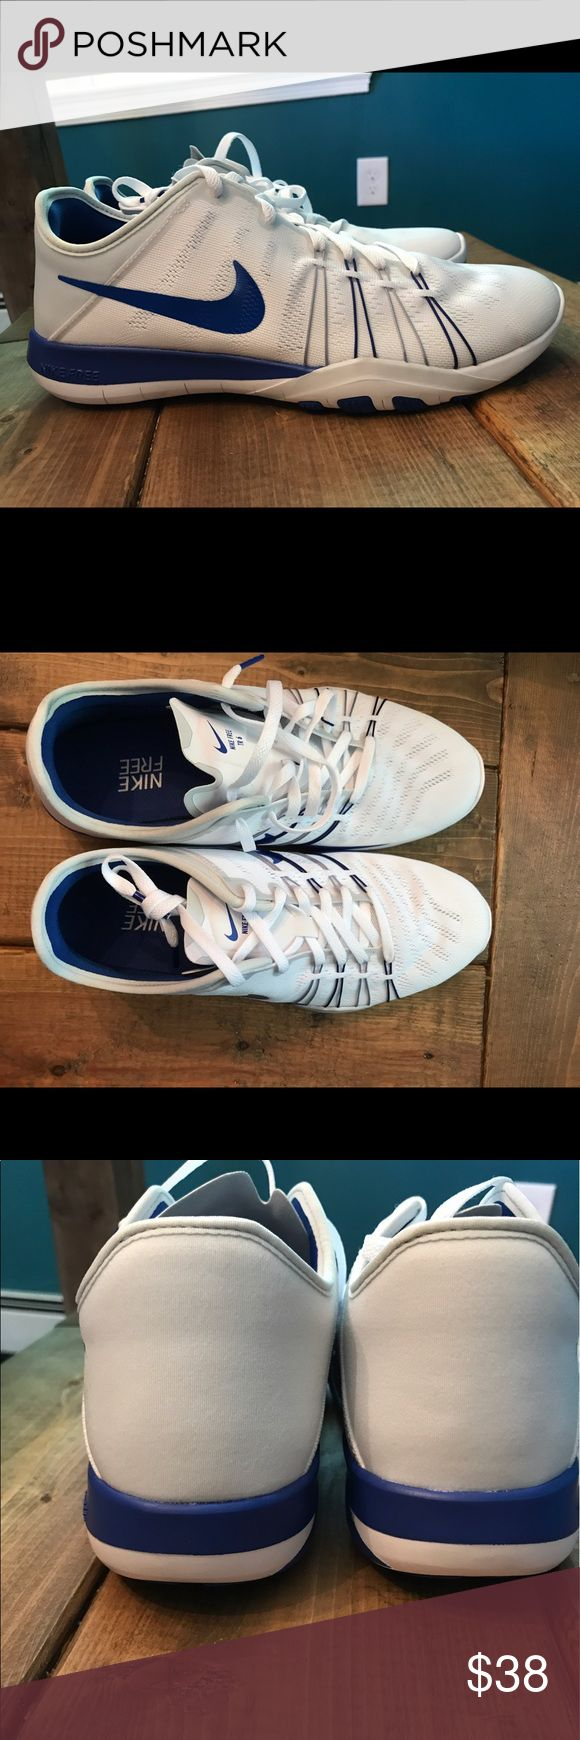 Nike Free Trainer 6 Women's Brand new with box, white with royal blue and grey accents. Never been worn! Make an offer! Nike Shoes Athletic Shoes